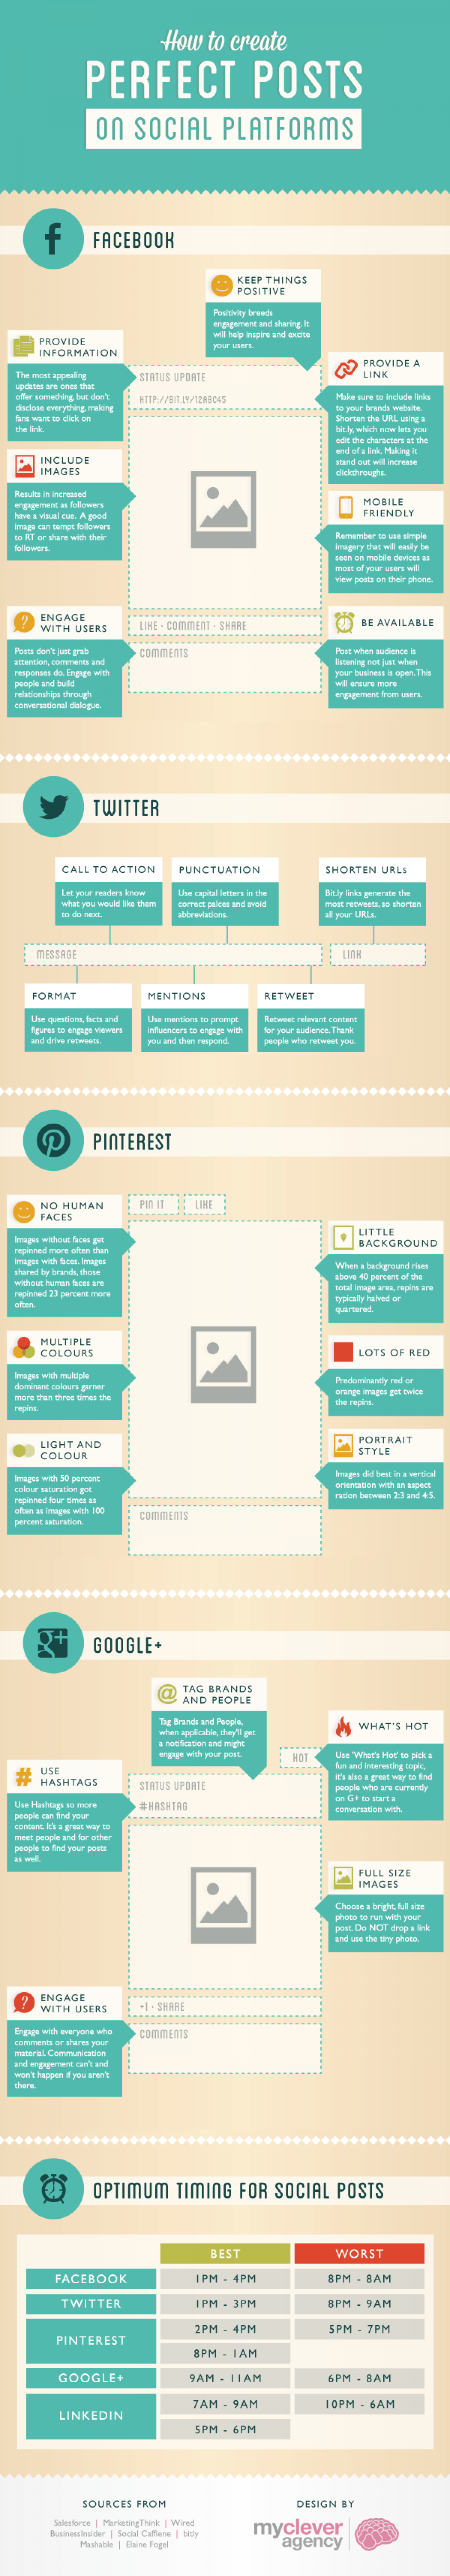 How To Create The Perfect Pinterest, Google+, Facebook & Twitter Posts  Infographic